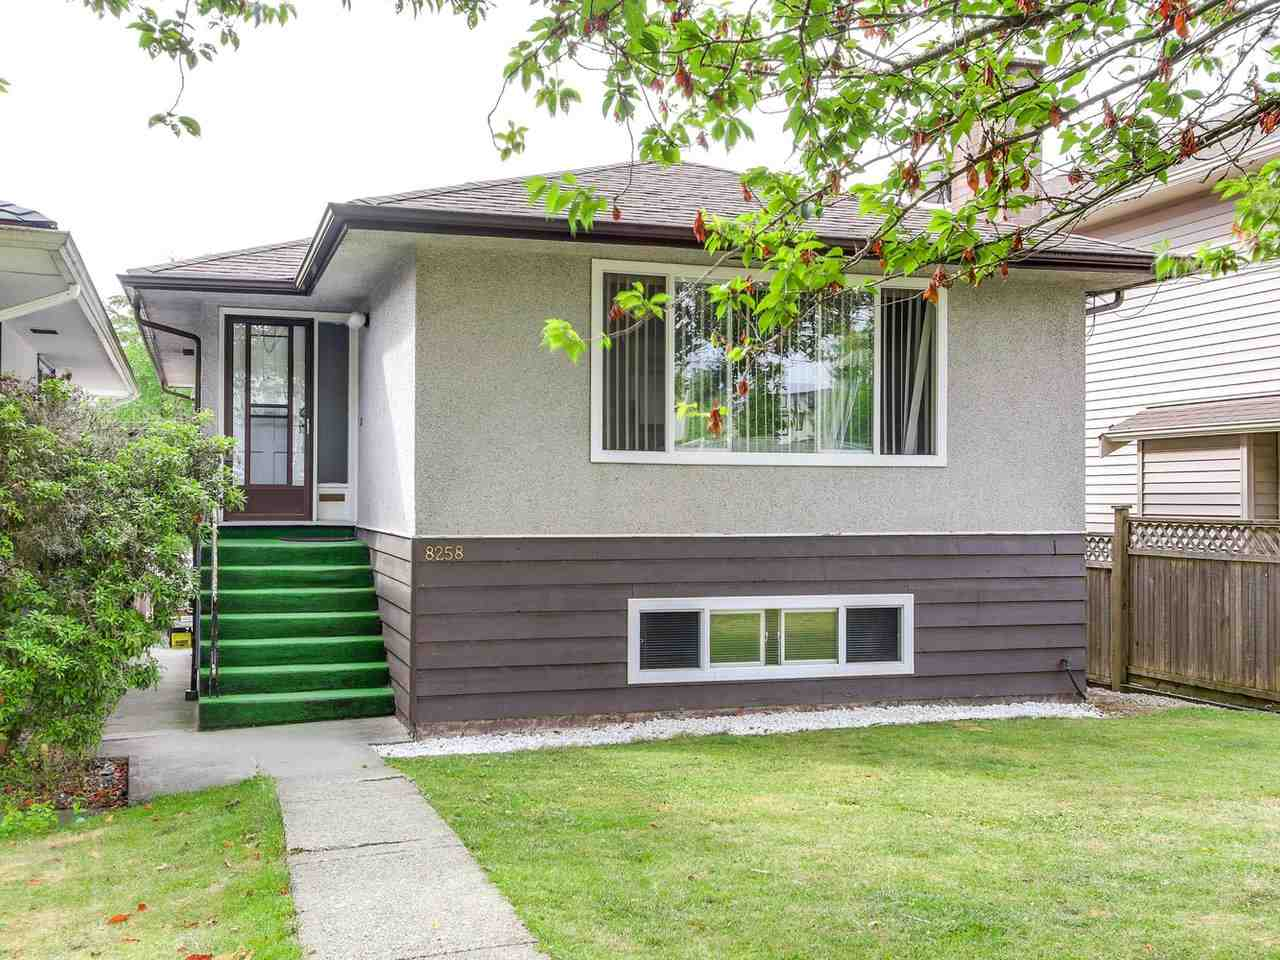 Main Photo: 8258 12TH Avenue in Burnaby: East Burnaby House for sale (Burnaby East)  : MLS® # R2191001